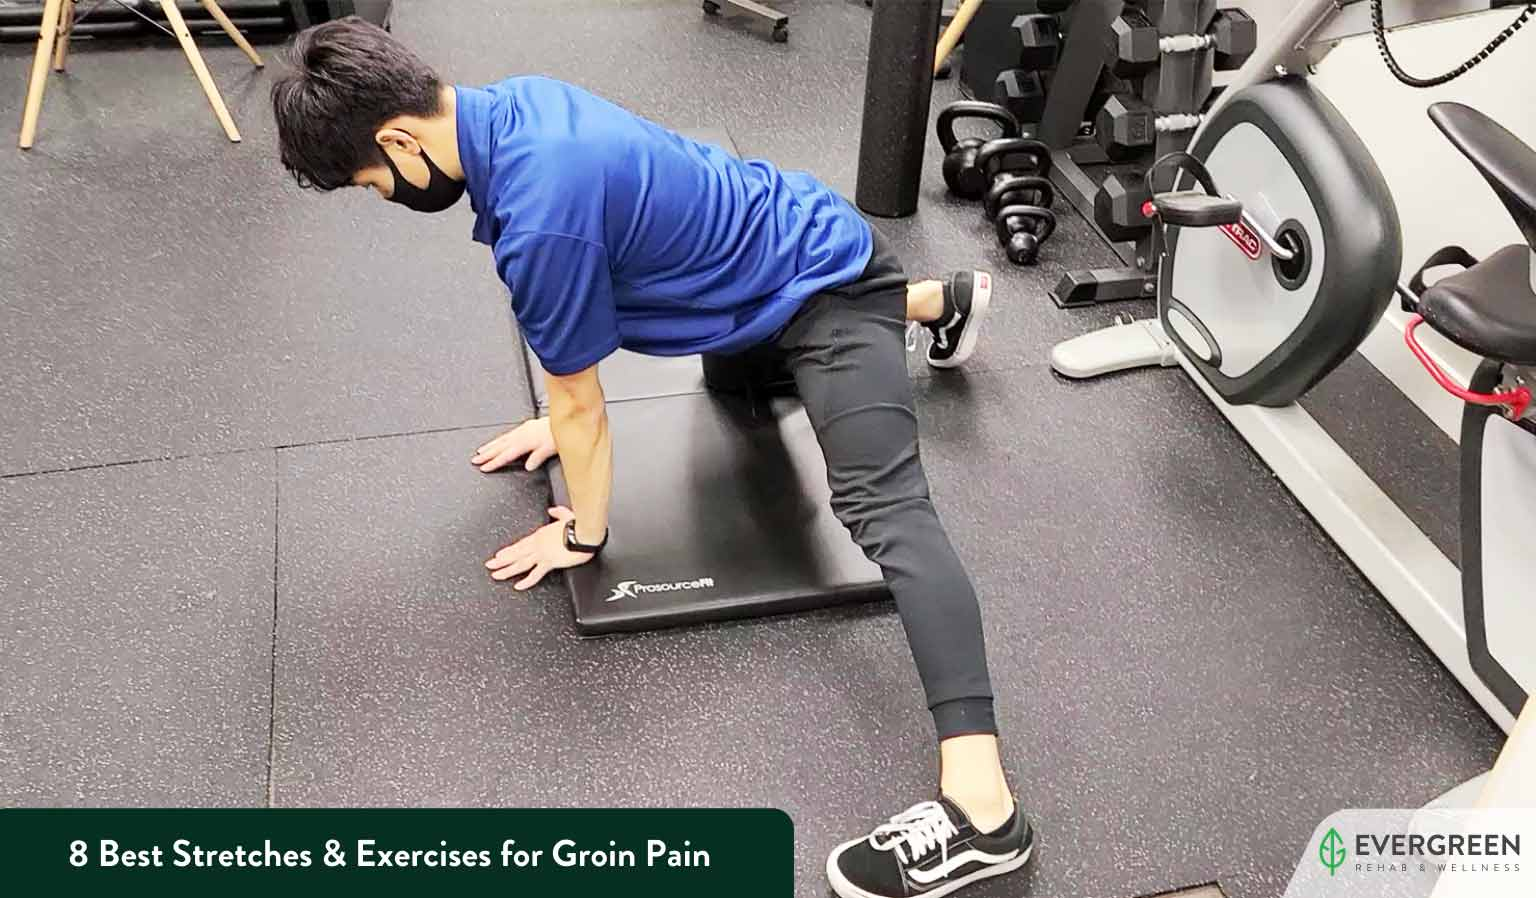 8 Best Stretches & Exercises for Groin Pain